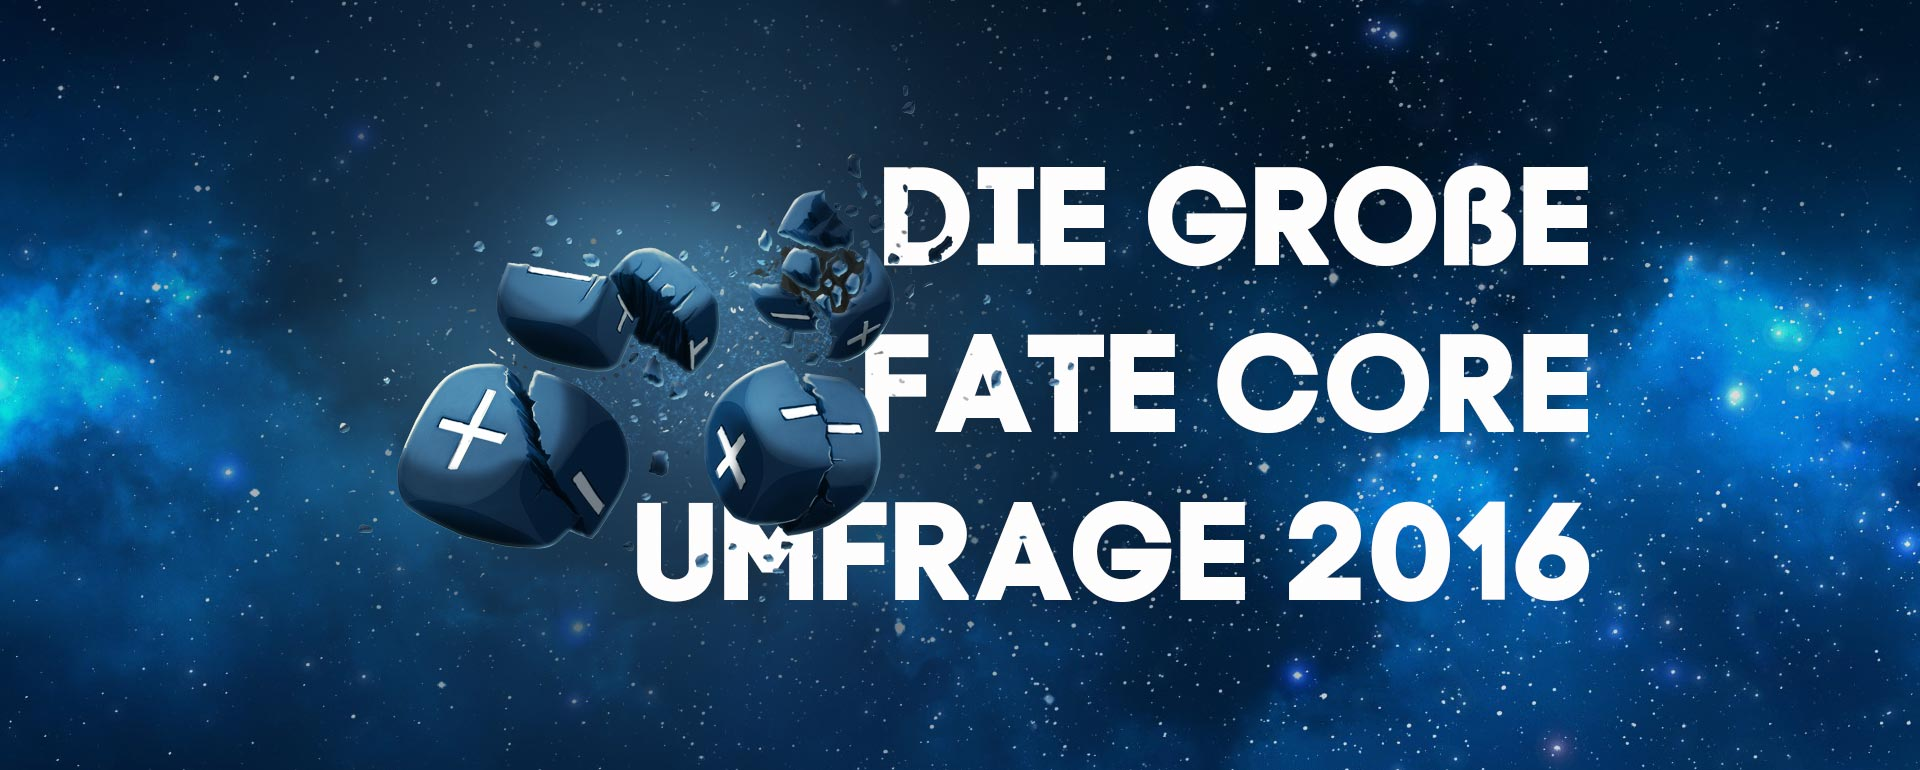 slider-fate-core-umfrage-2016